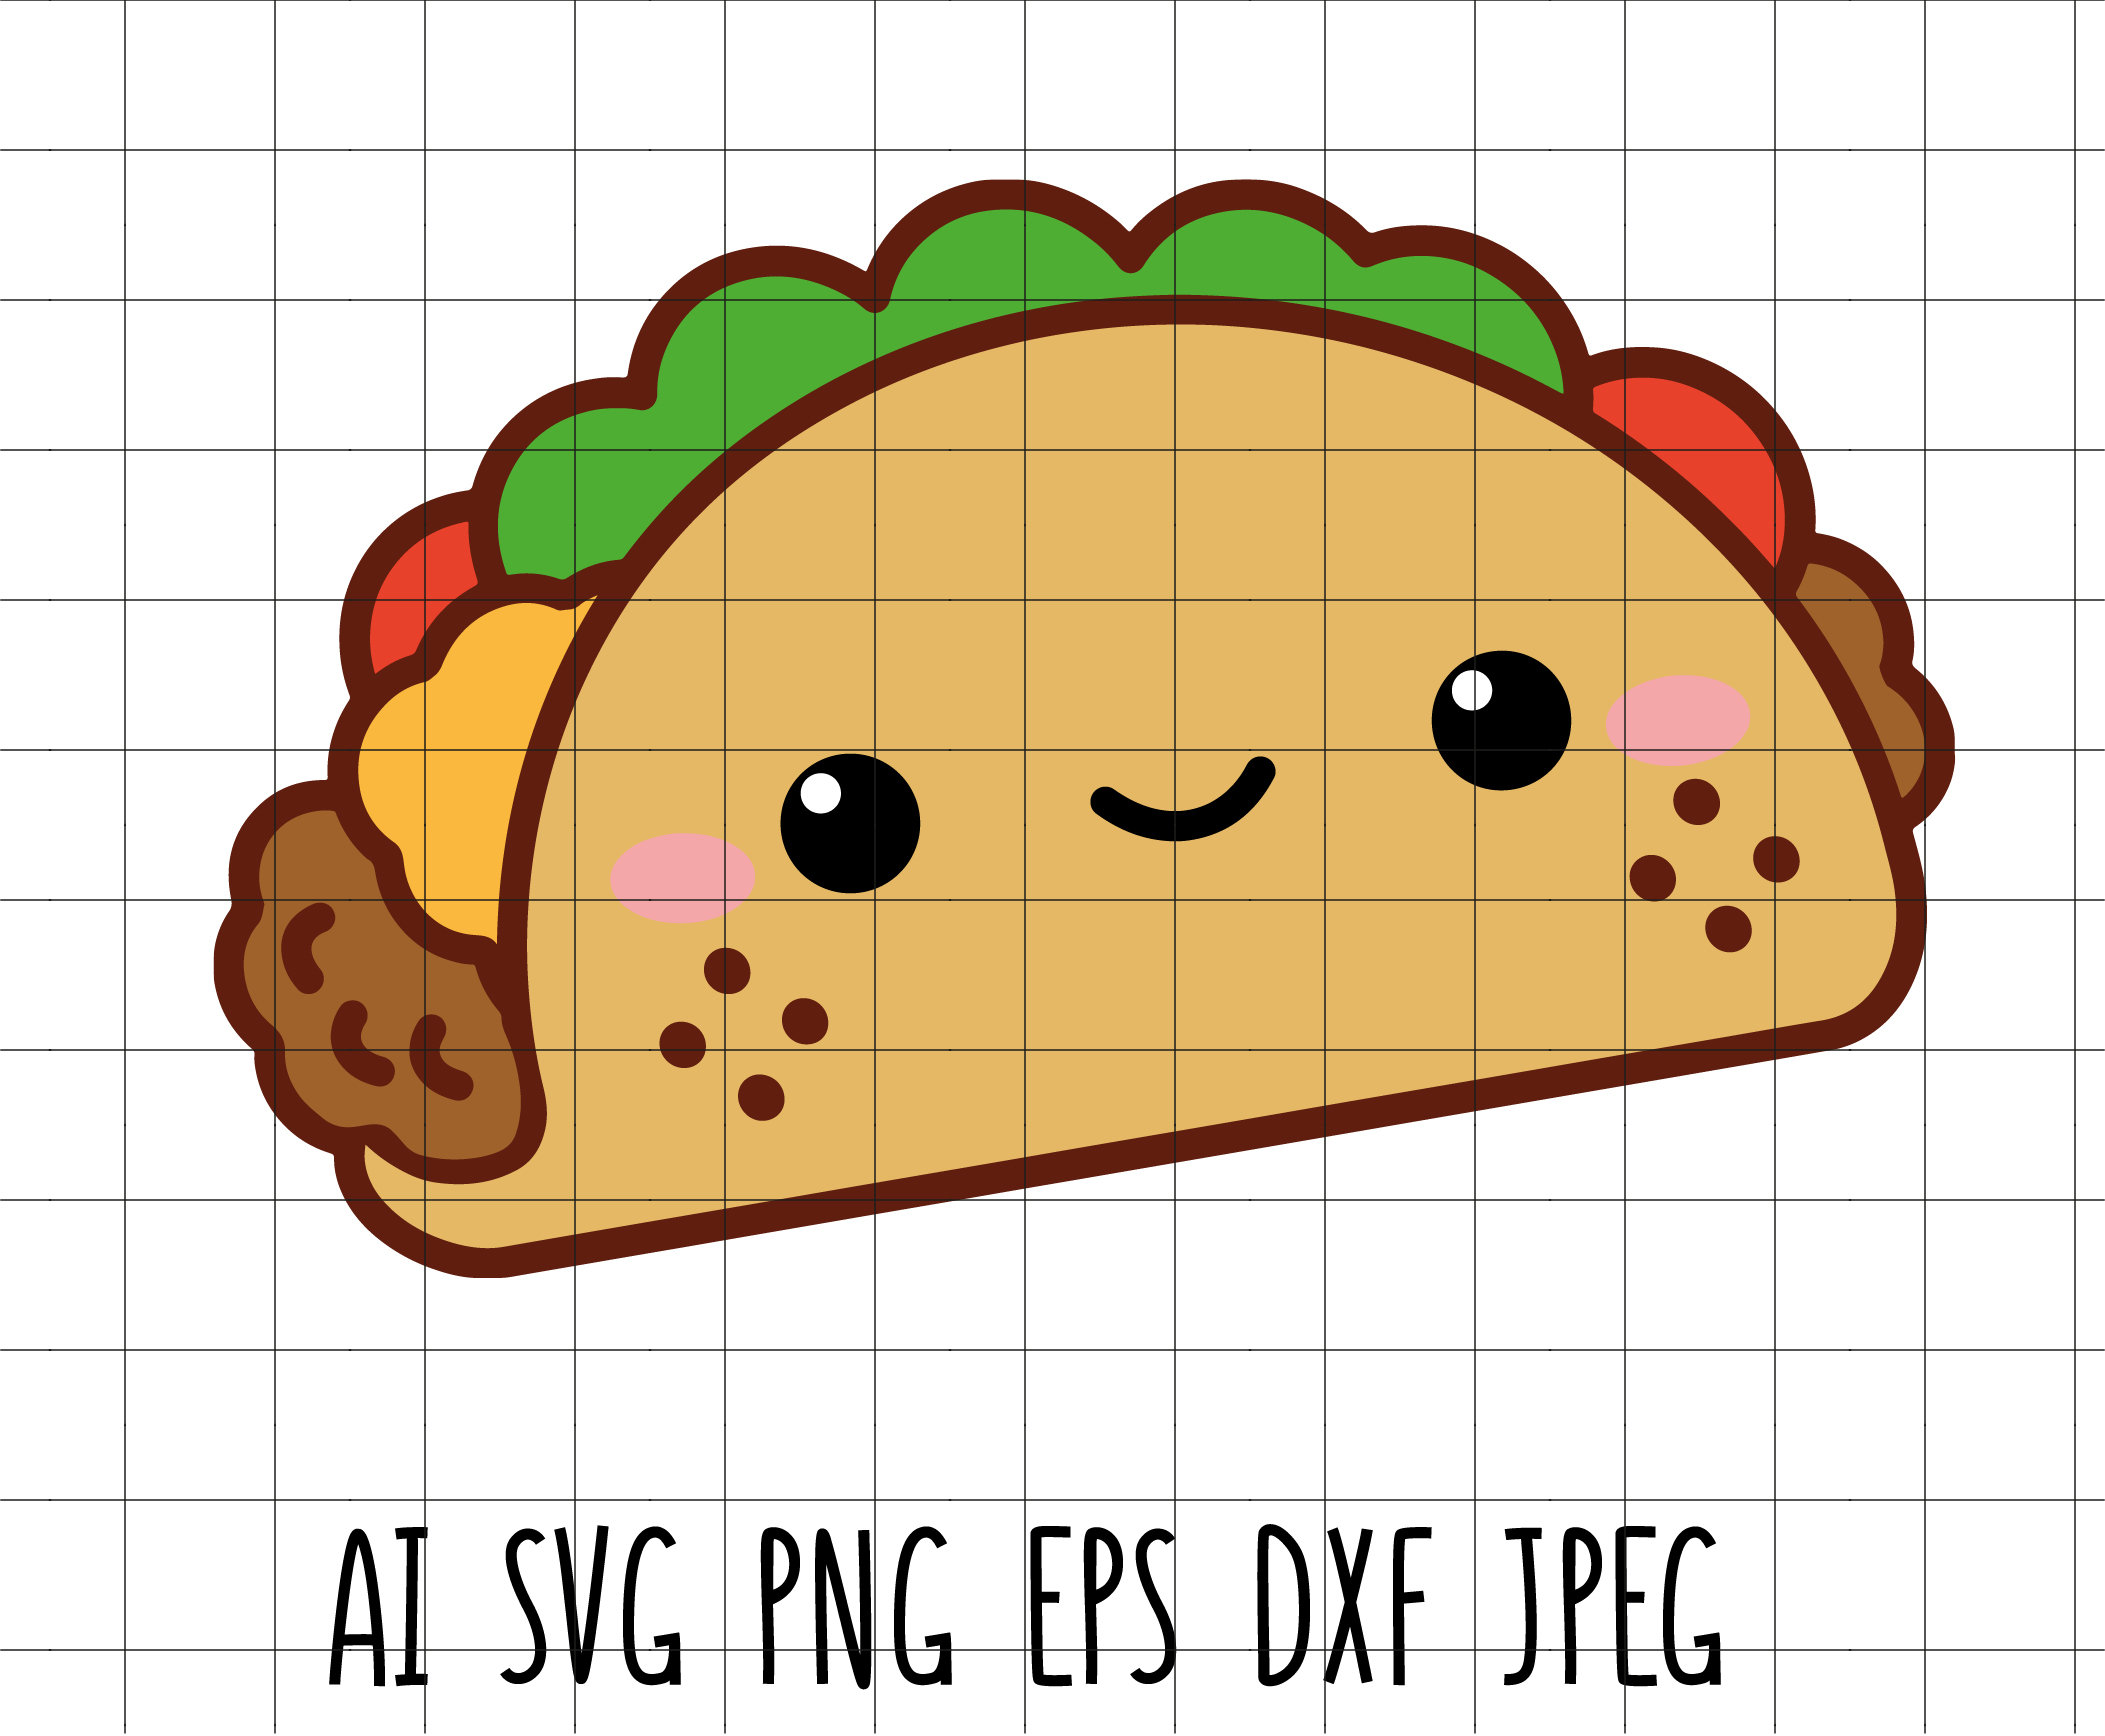 Cute Taco Kawaii Mexican Food Vector Clip Art Cutting File Vinyl Transfer  Embroidery Scrapbooking Decor Svg Dxf Eps Jpeg Ai Png.